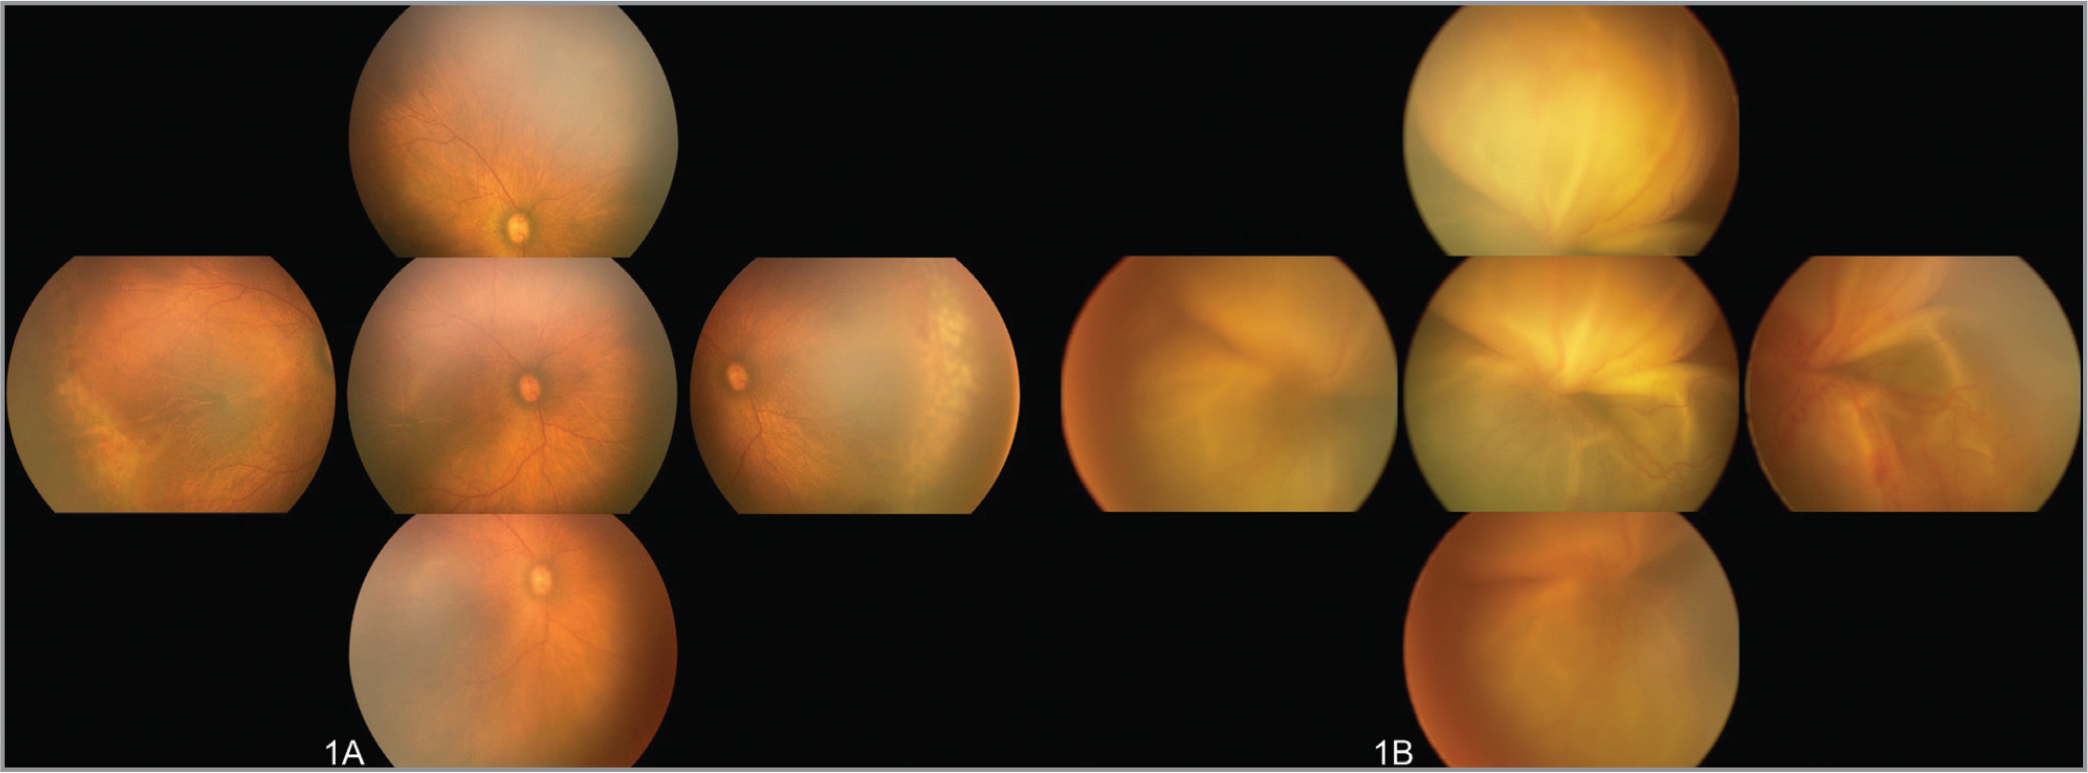 Fundus photographs of the right (A) and left eyes (B) at 37 weeks postmenstrual age (1 week after laser photocoagulation). The right eye demonstrated the resolution of plus disease with residual ridge and laser scars in the avascular retina. Severe exudative retinal detachment (ERD) with persistent vascular dilation noted in the left eye.